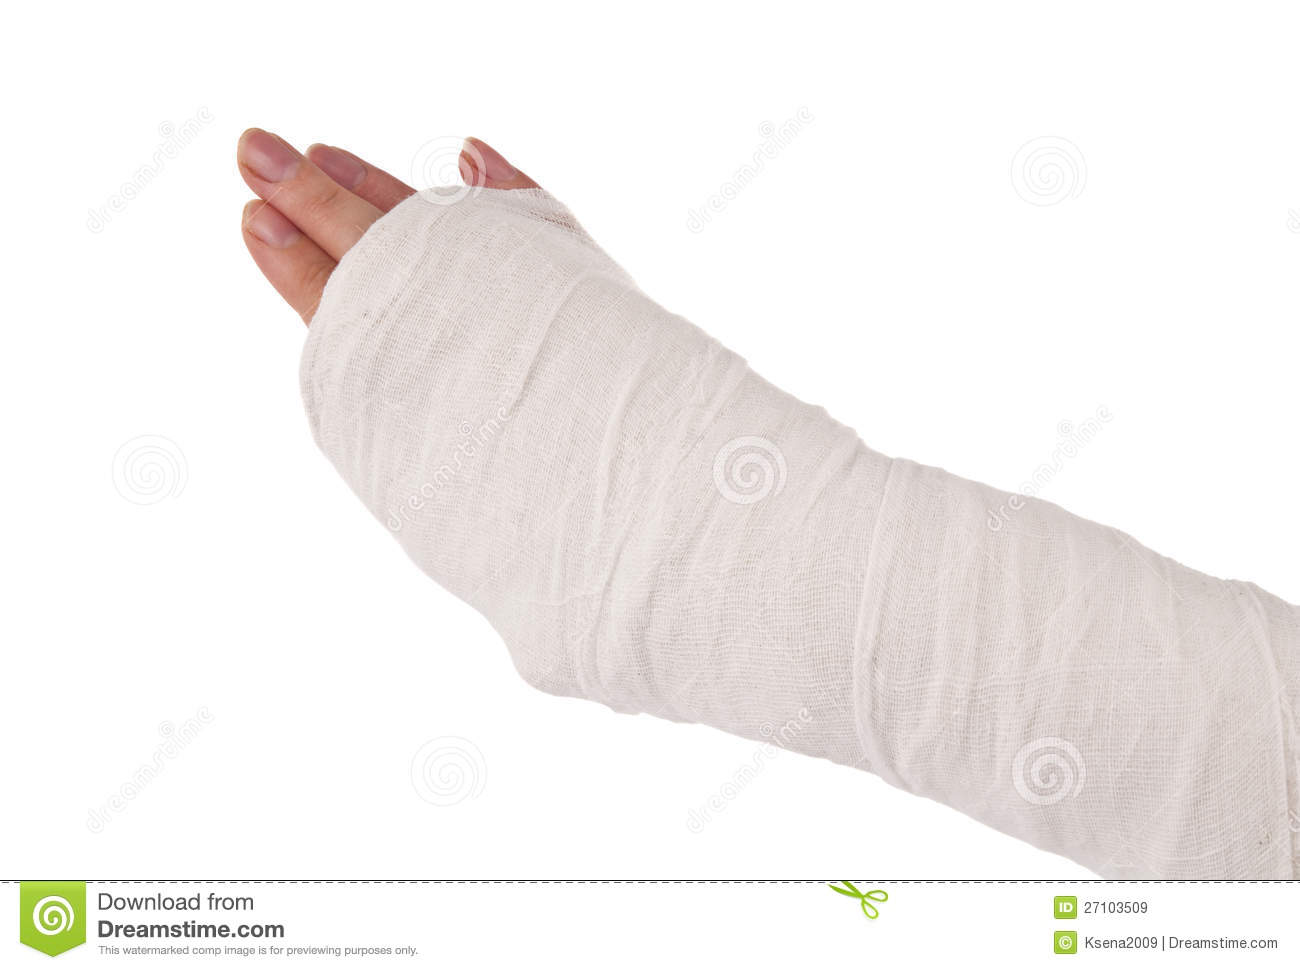 ... Face Clip Art furthermore Plaster Arm Cast. on clipart broken arm